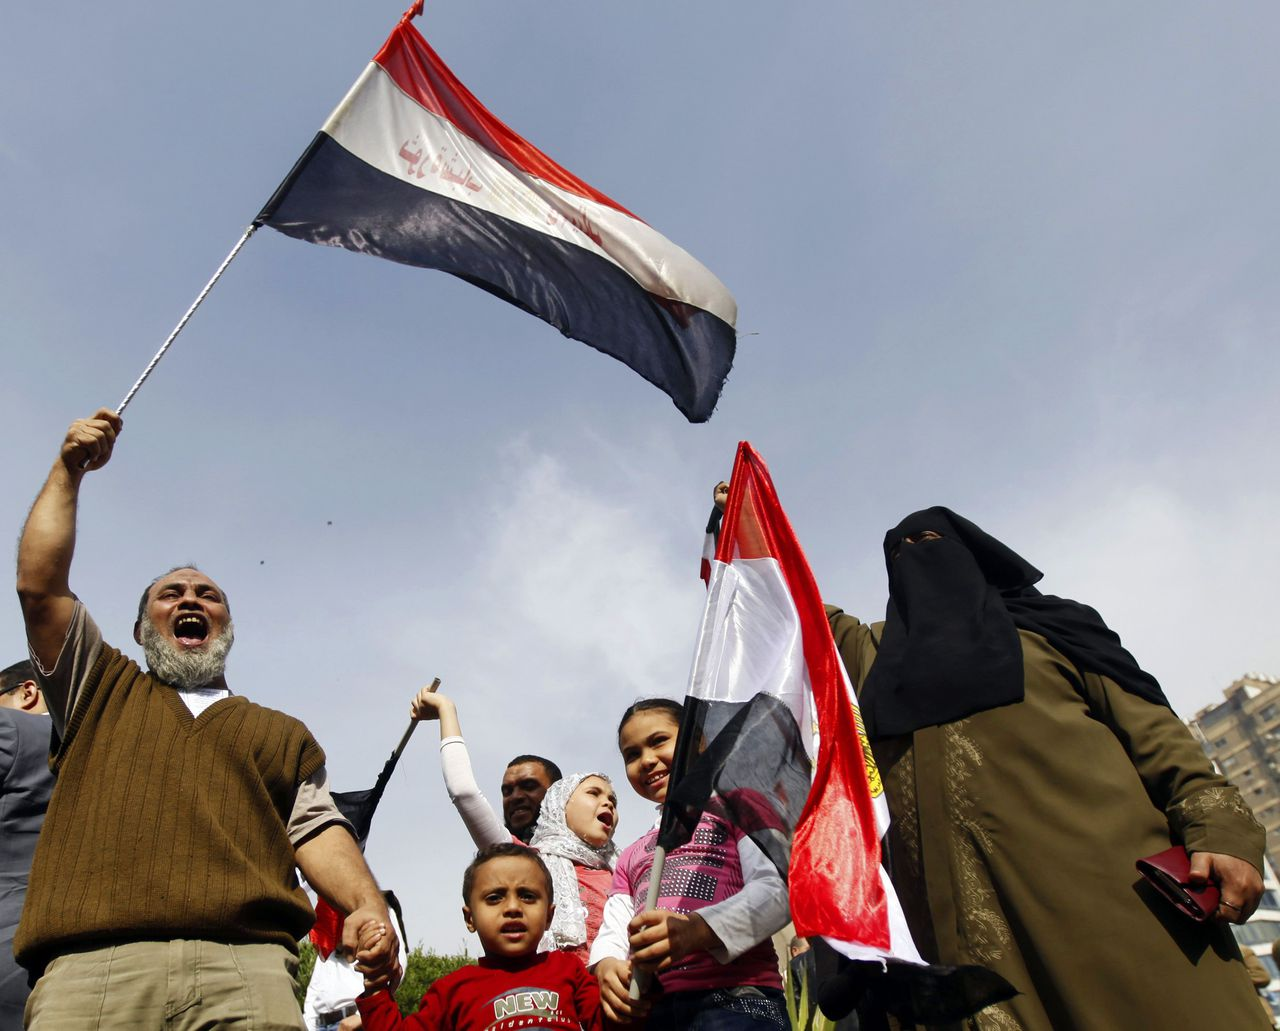 Supporter of Egyptian President Mohamed Mursi with his family chant pro-Mursi slogans, during a rally in the vicinity of Cairo University and Nahdet Misr Square in Giza, on the outskirts of Cairo December 1, 2012. Tens of thousands of Islamists demonstrated in Cairo on Saturday in support of President Mohamed Mursi, who is racing through a constitution to try to defuse opposition fury over his newly expanded powers. REUTERS/Amr Abdallah Dalsh (EGYPT - Tags: POLITICS CIVIL UNREST TPX IMAGES OF THE DAY)